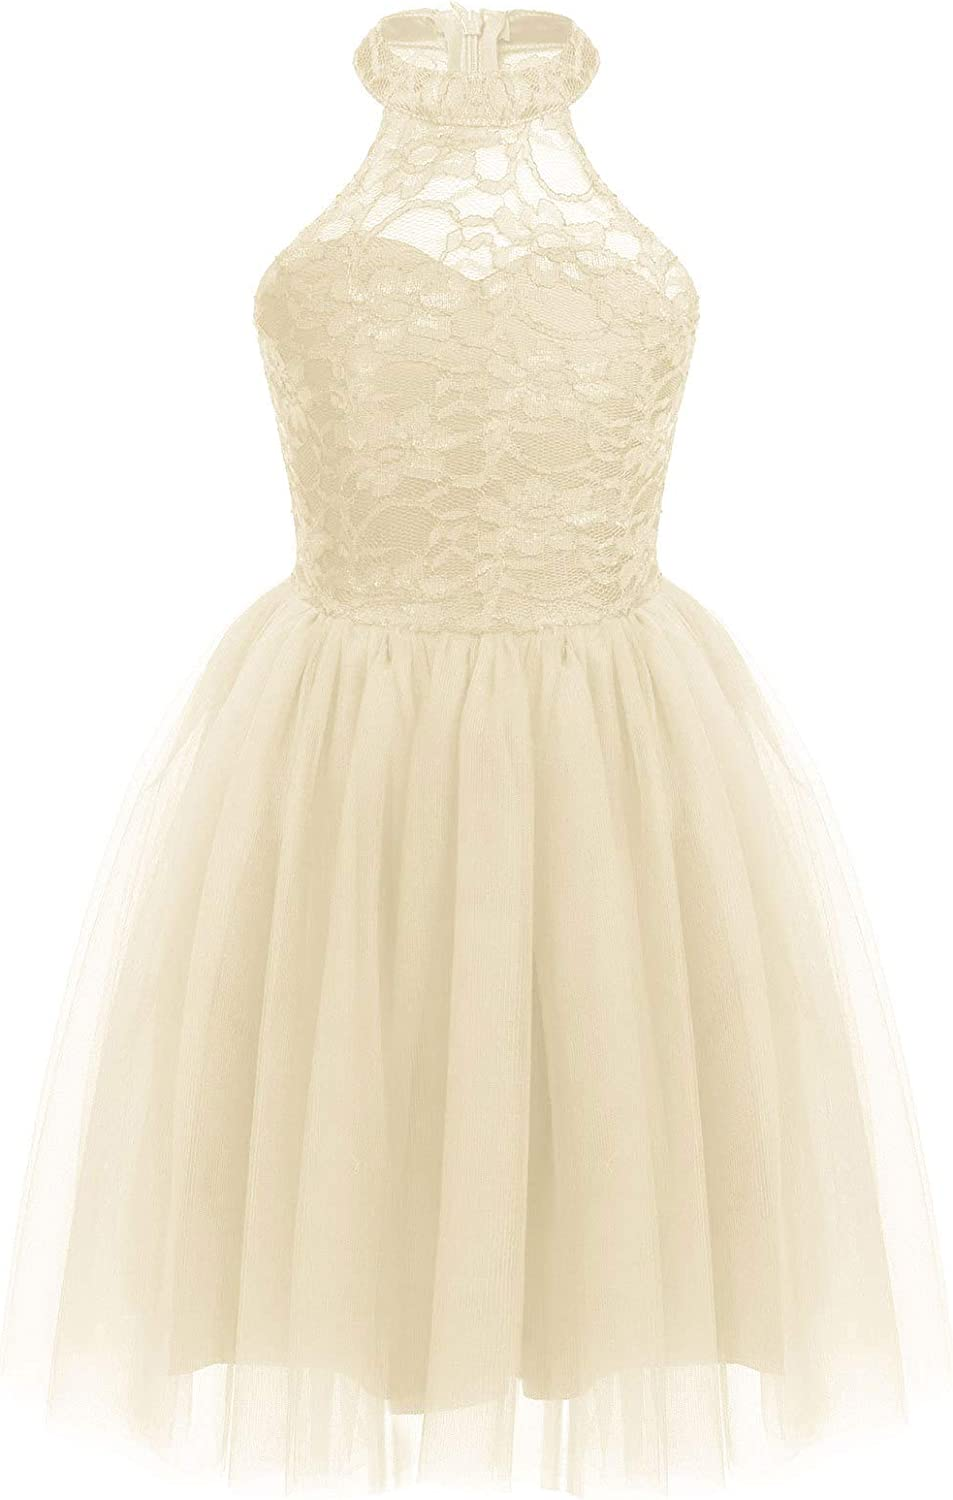 YiZYiF Kids Big Girls Halter Lace Junior Bridesmaid Dress Sleeveless Floral Pageant Prom Dresses